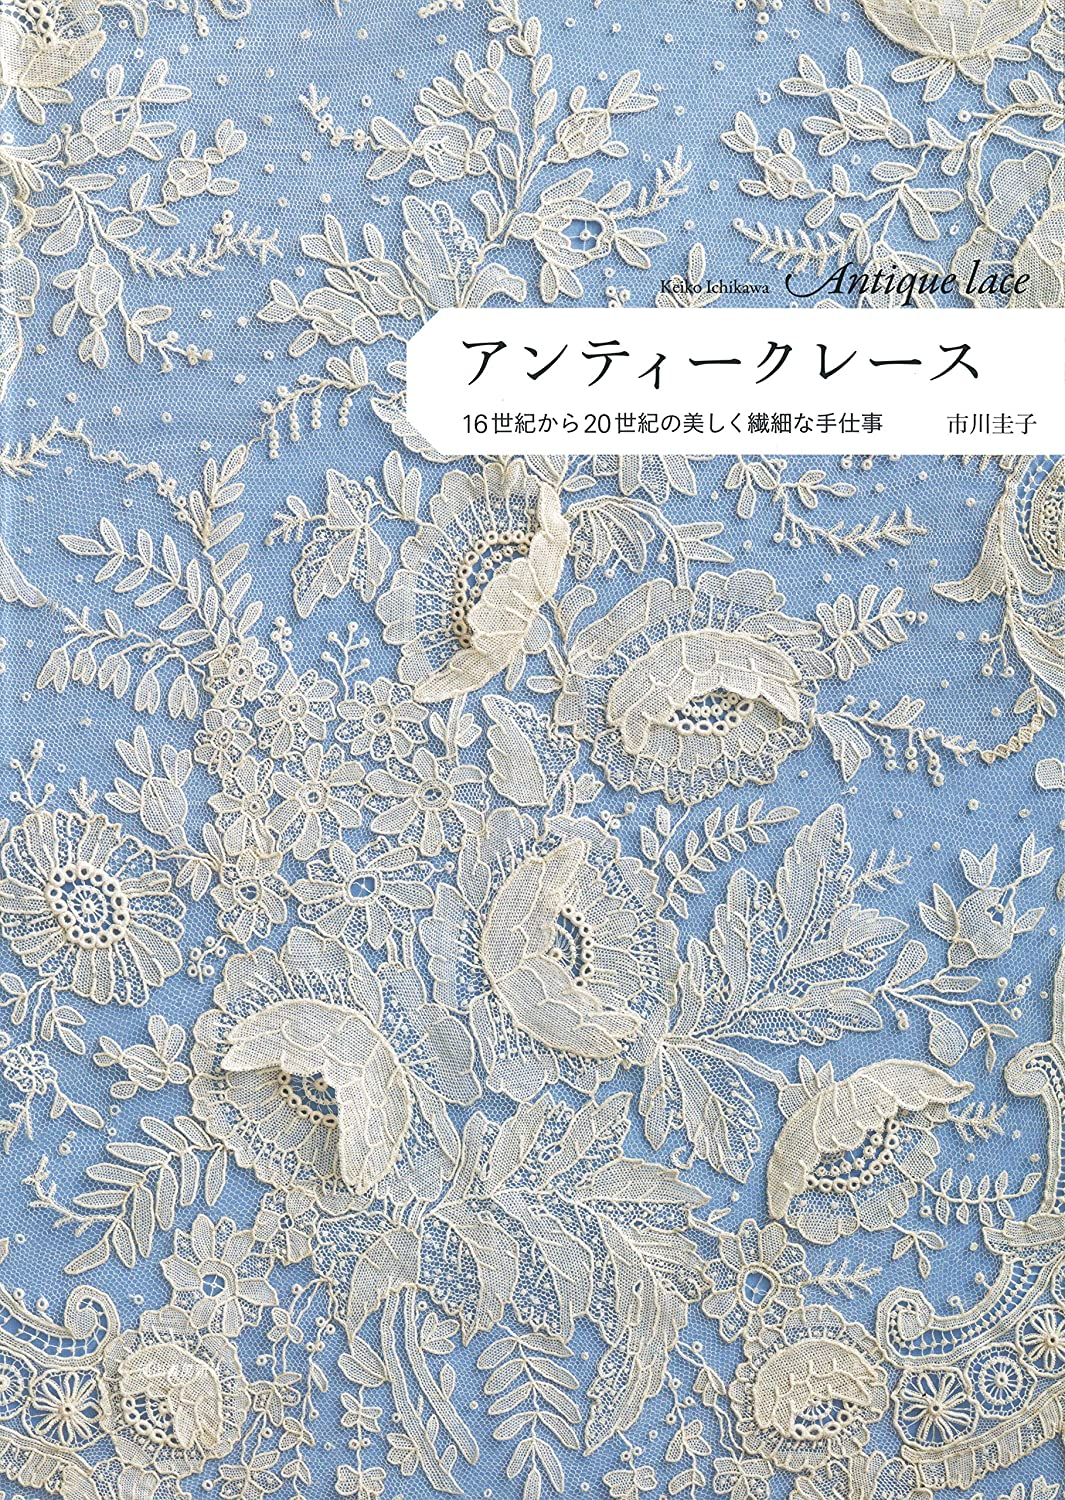 Antique lace: beautiful and delicate handicrafts of the 16th and 20th centuries